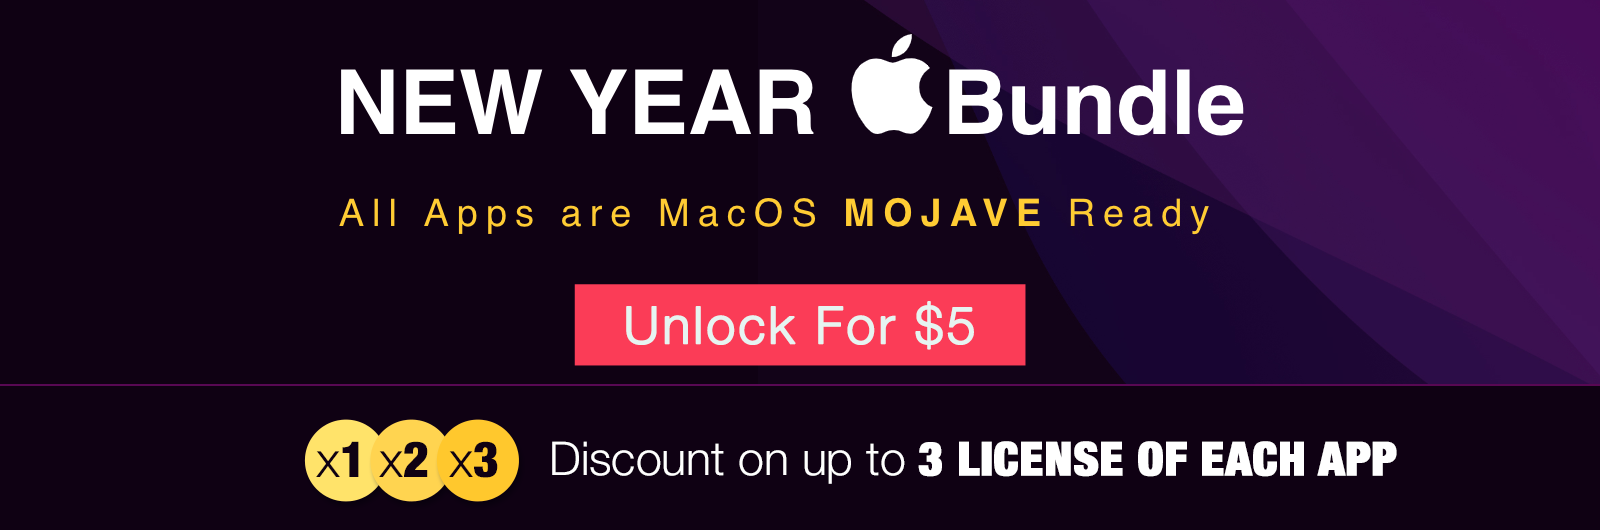 UNLOCK YOUR New Year MAC BUNDLE FOR $5 - 1600px width Poster